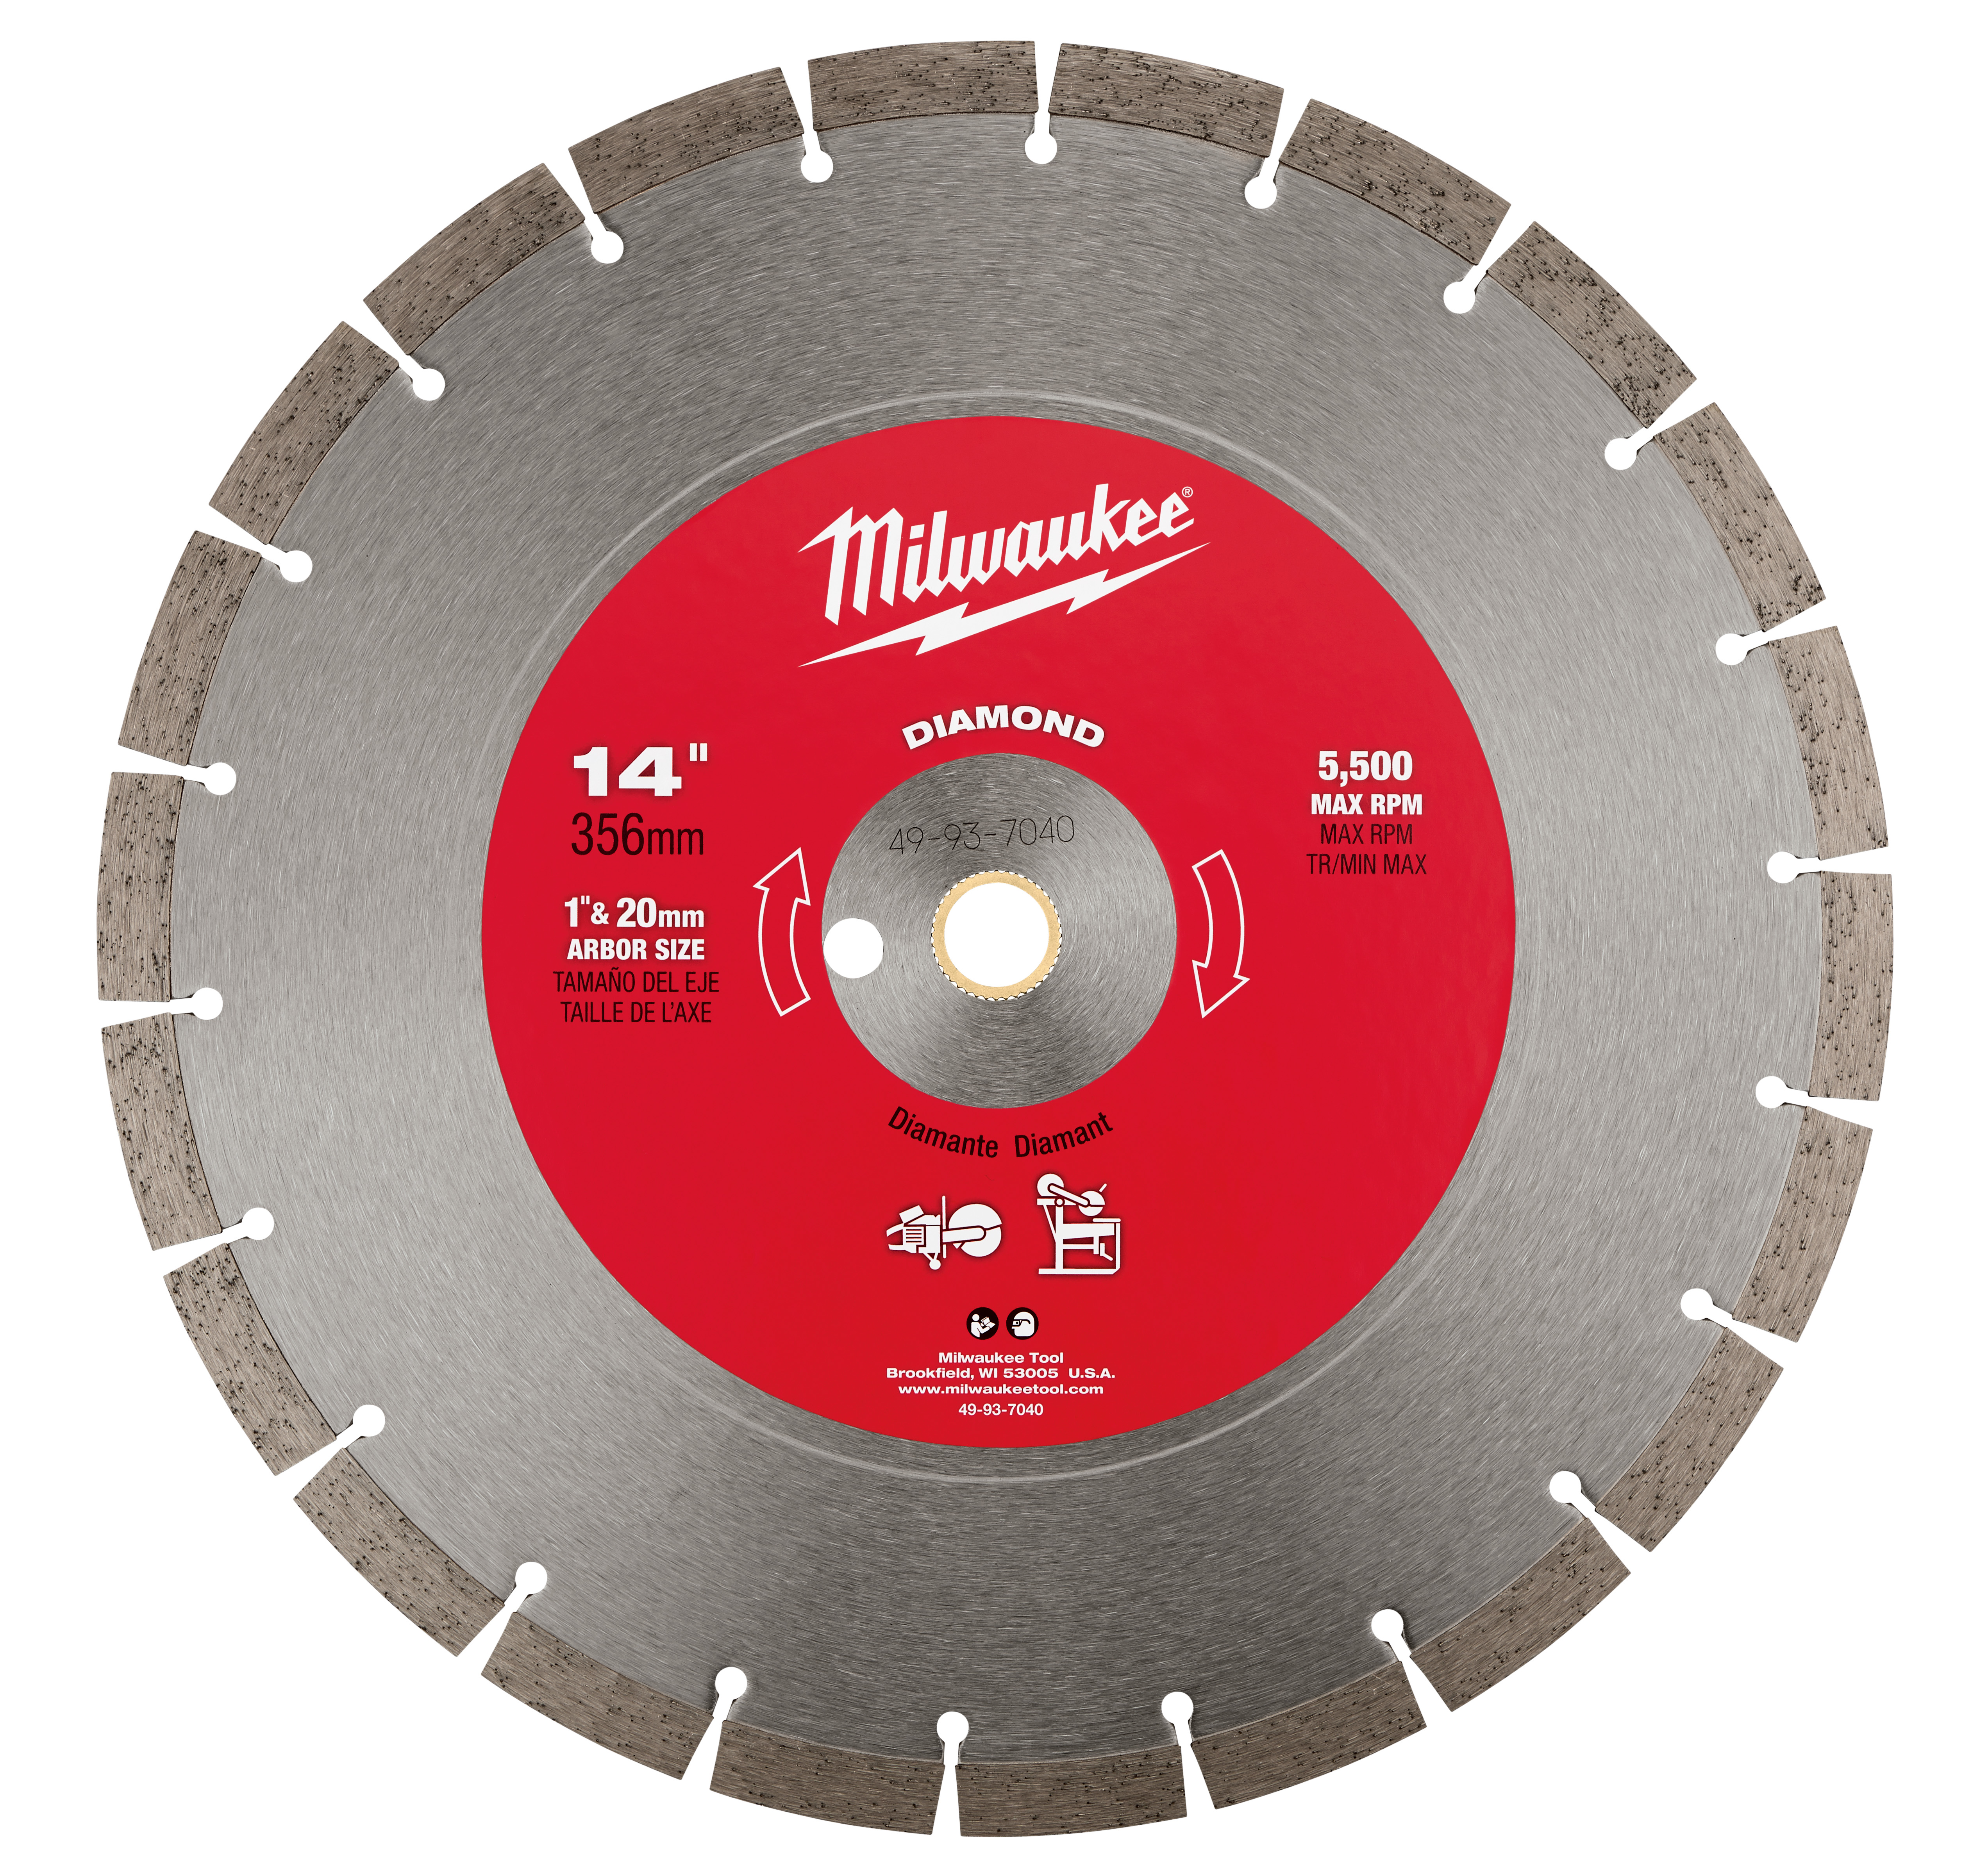 Milwaukee® 49-93-7040 Premium Segmented Circular Diamond Saw Blade, 14 in Dia Blade, 1 in, 20 mm Arbor/Shank, Dry/Wet Cutting